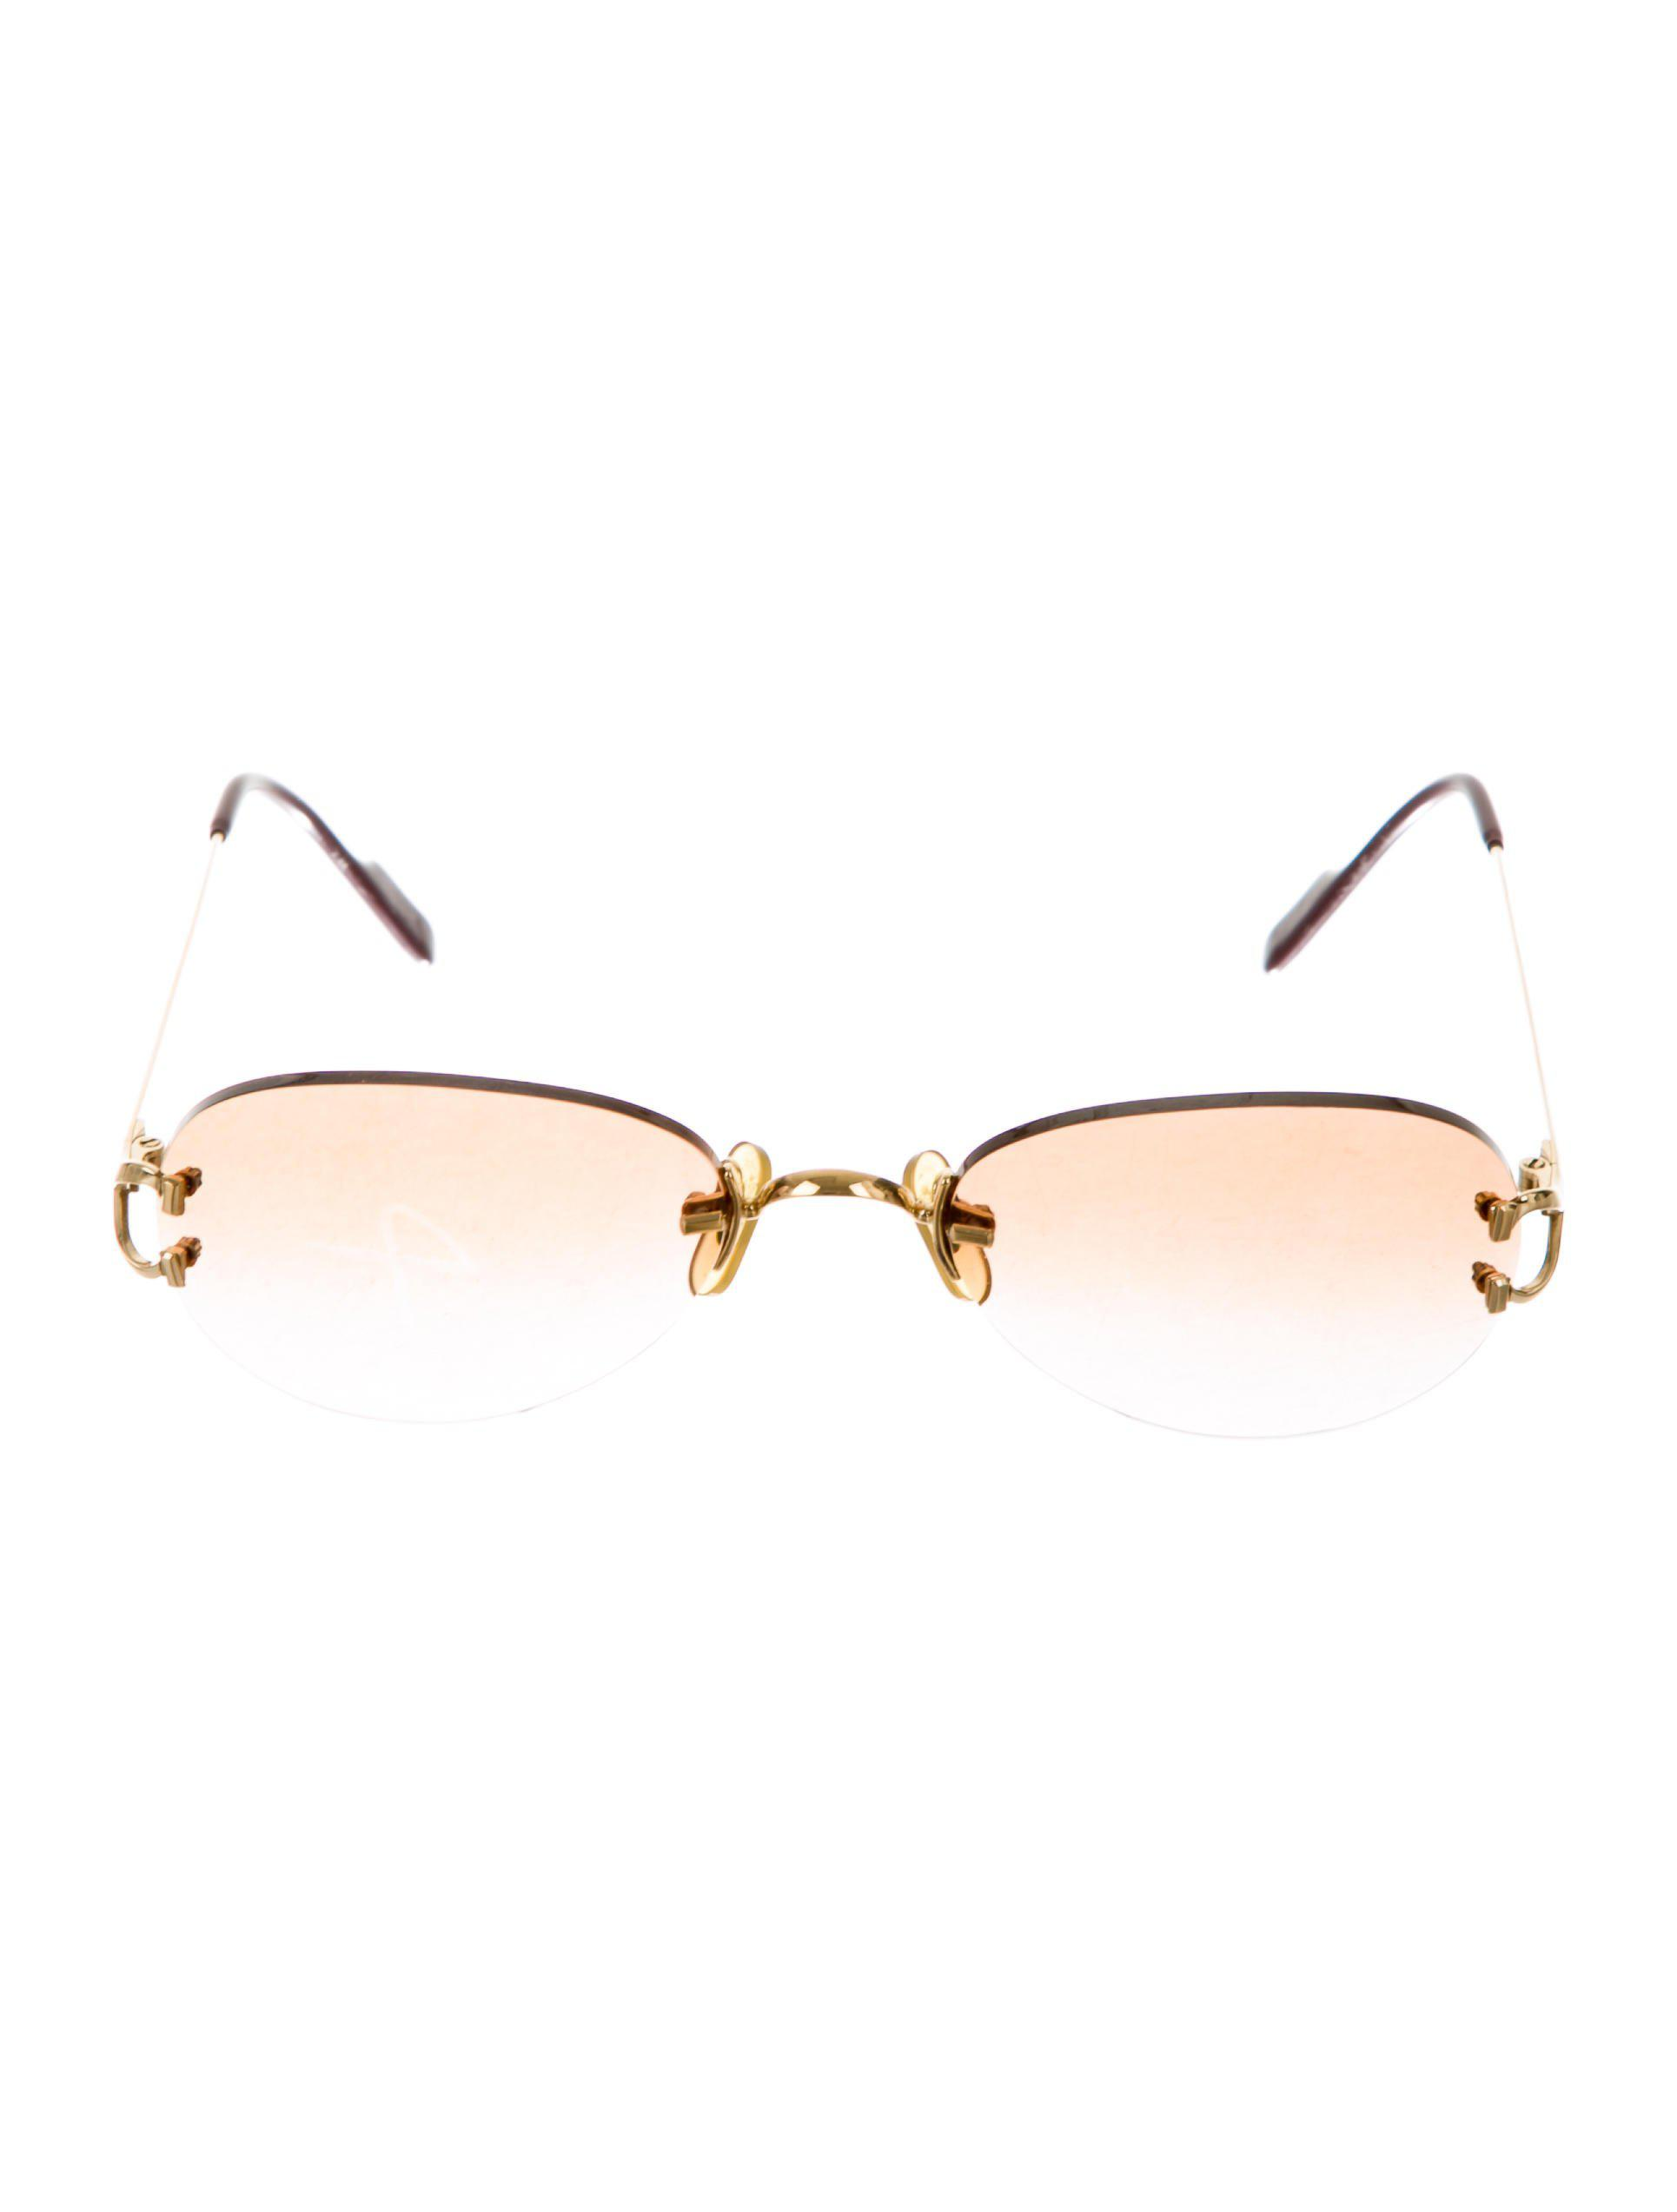 Lyst - Cartier 18k Rimless Chelsea Sunglasses Gold in Metallic